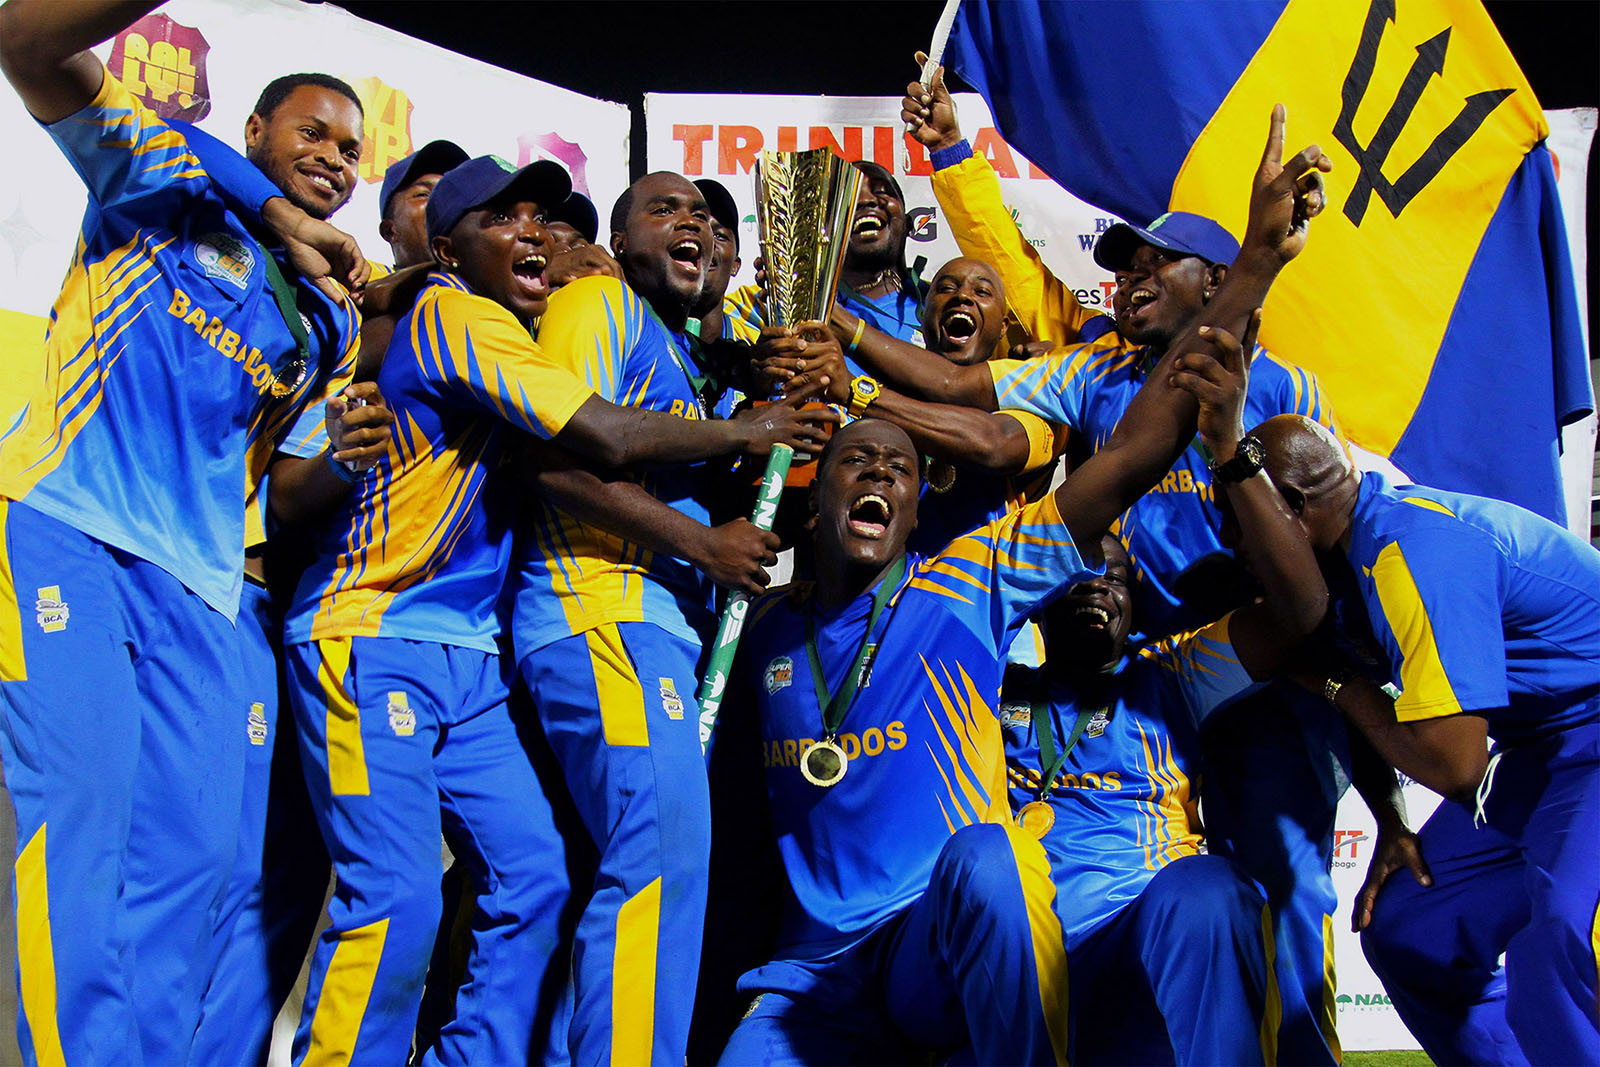 Barbados-Nagico-Super-50-Winners-2014